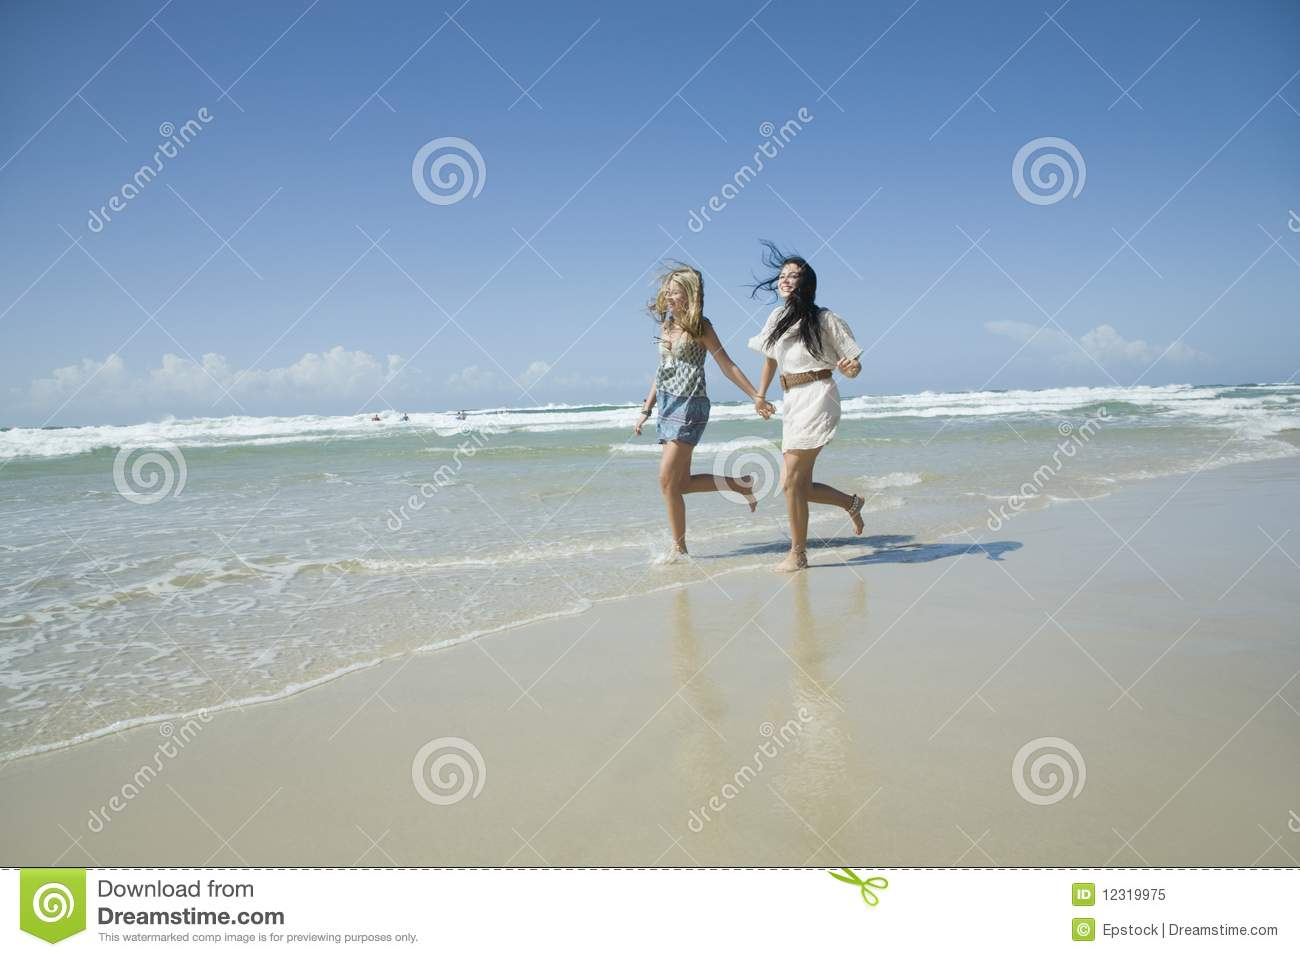 Royalty Free Stock Photo  Two sisters running on beach holding handsTwo Sisters Holding Hands